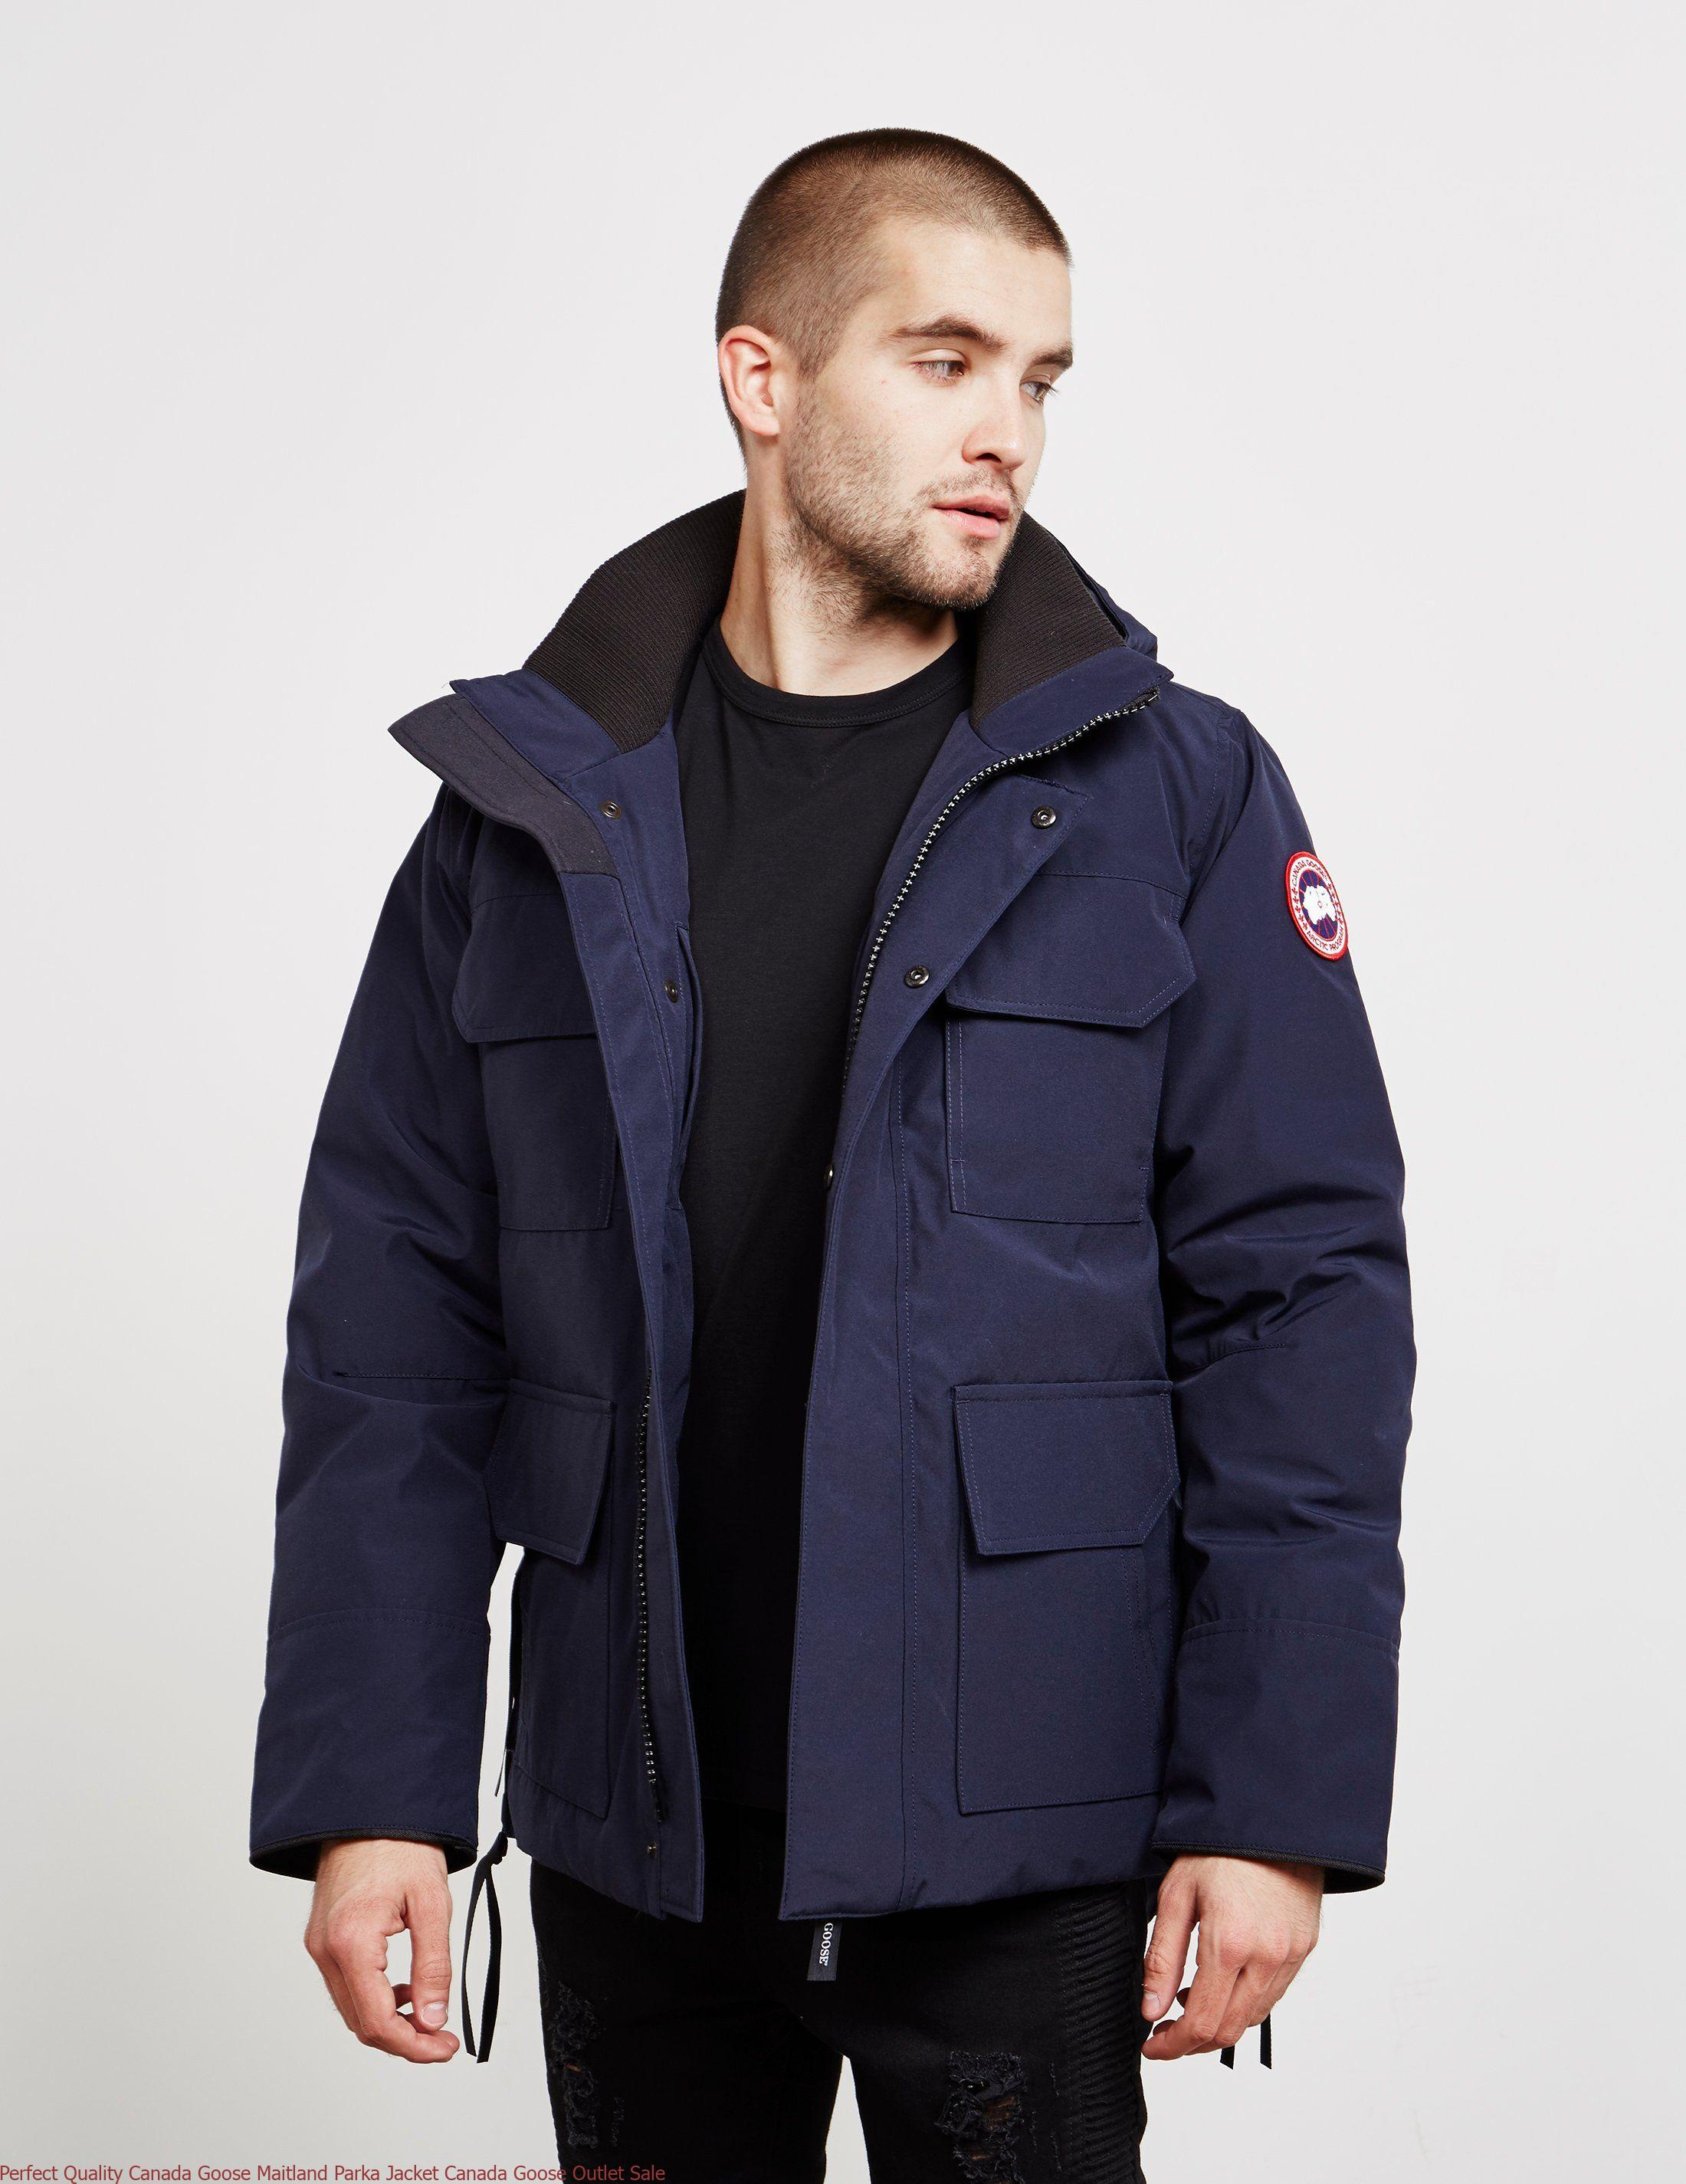 Perfect Quality Canada Goose Maitland Parka Jacket Canada Goose Outlet Sale  – Canada Goose Uk Outlet – Up to 70% Off Cheap Canada Goose d938be86251c